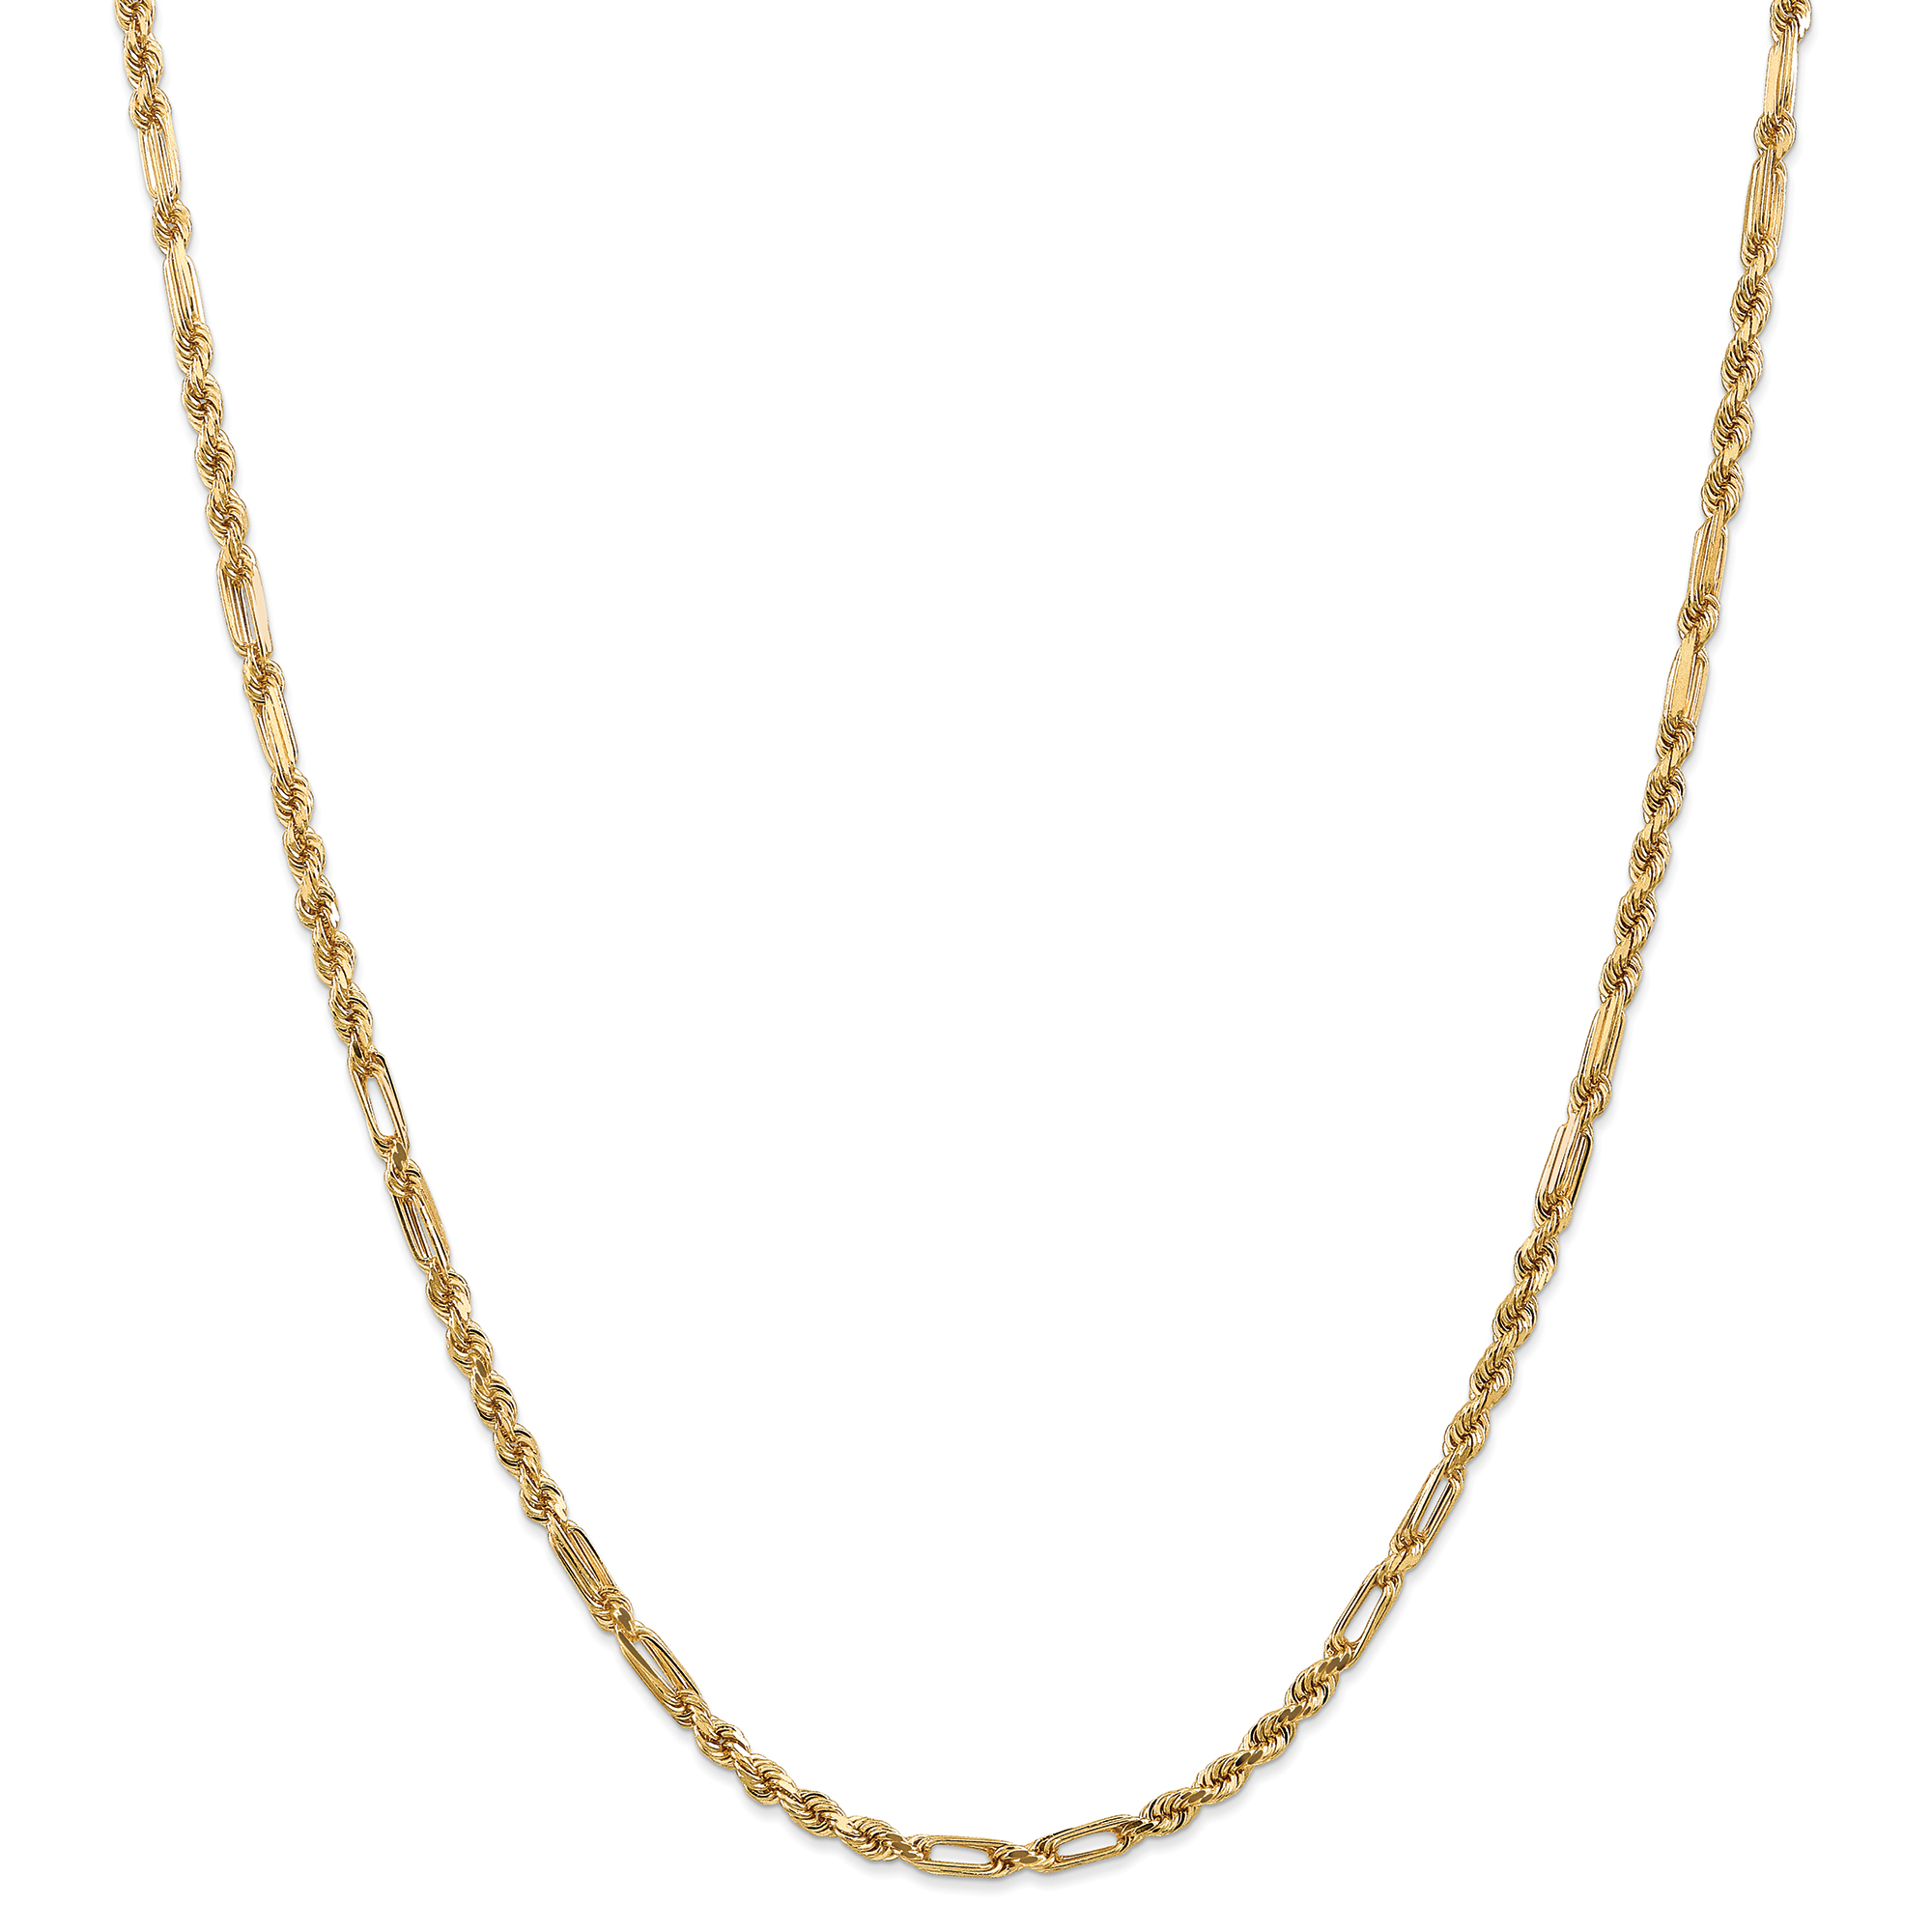 ICE CARATS 14kt Yellow Gold 3mm Milano Link Rope Necklace Chain Pendant Charm Fine Jewelry Ideal Gifts For Women Gift... by IceCarats Designer Jewelry Gift USA